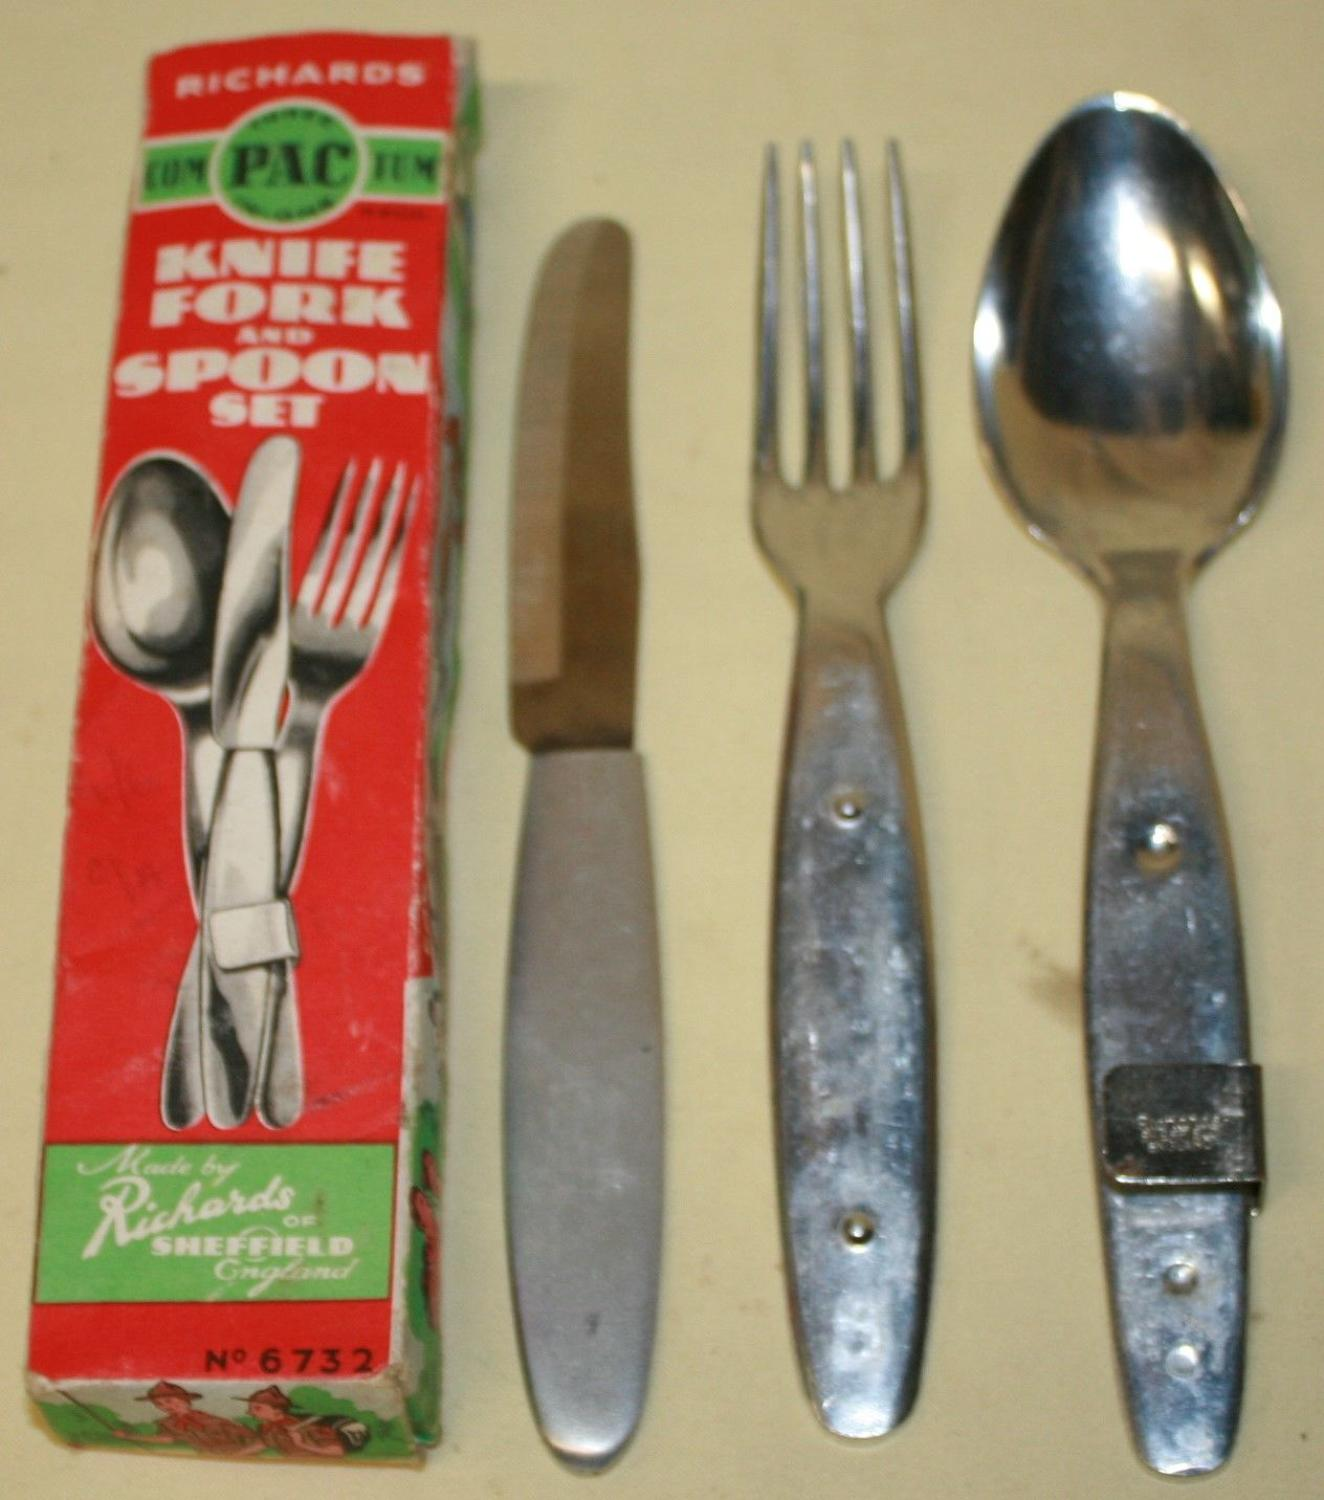 THE RICHARDS KNIFE FORK AND SPOON SET SIMILAR TO THE BRITISH ISSUE SET